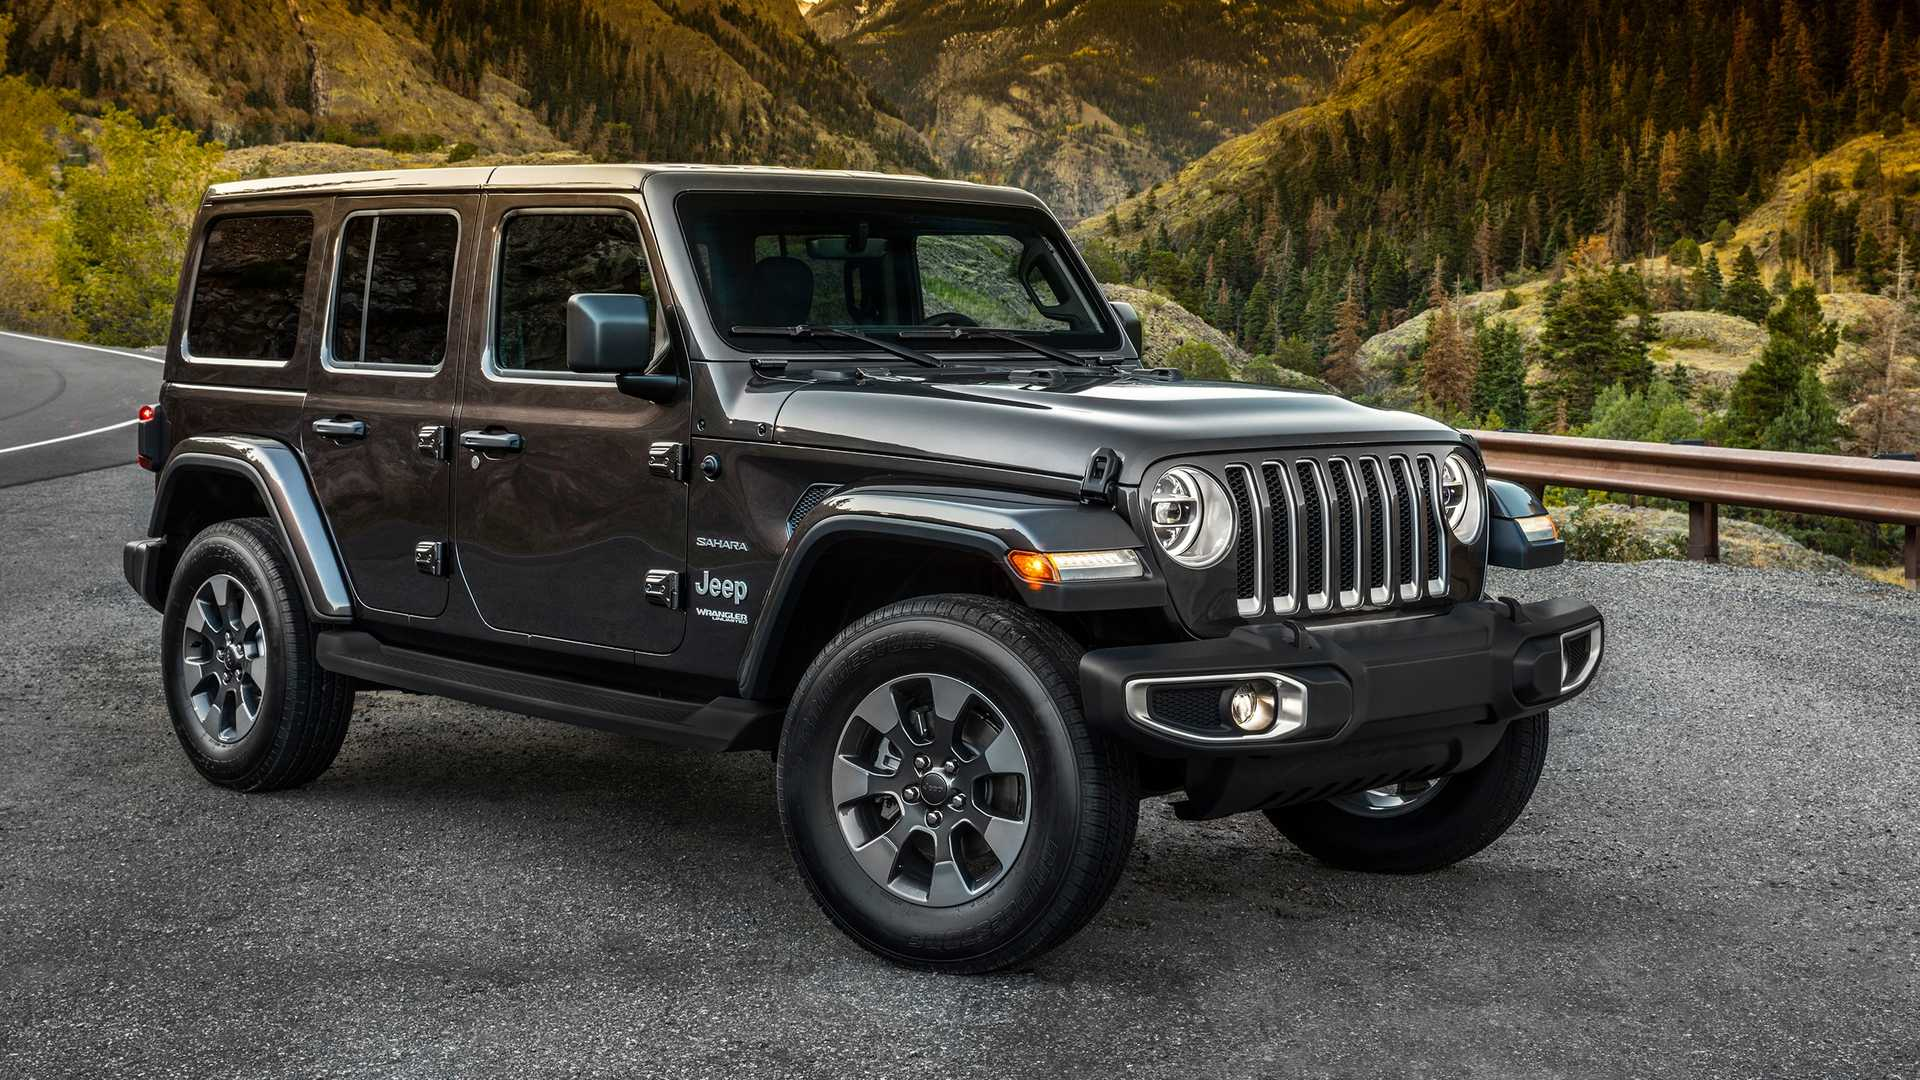 33 Great 2020 Jeep Wrangler Updates Style by 2020 Jeep Wrangler Updates